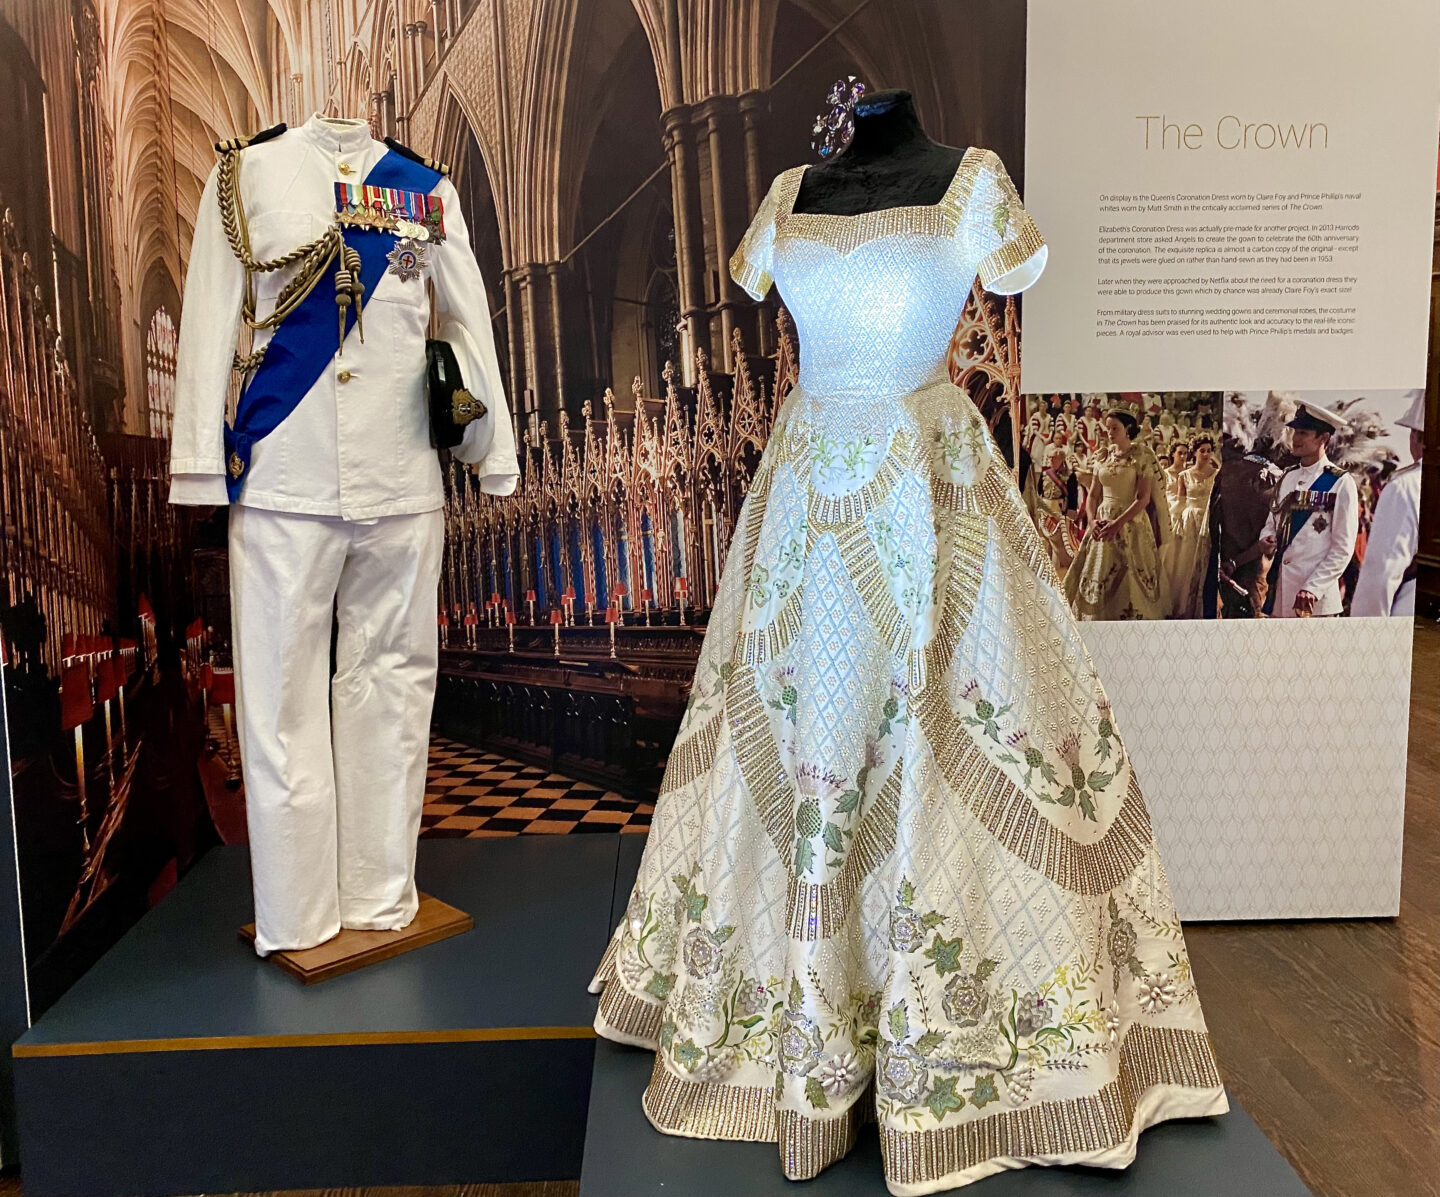 A replica of the Queen and Prince Phillips coronation outfits